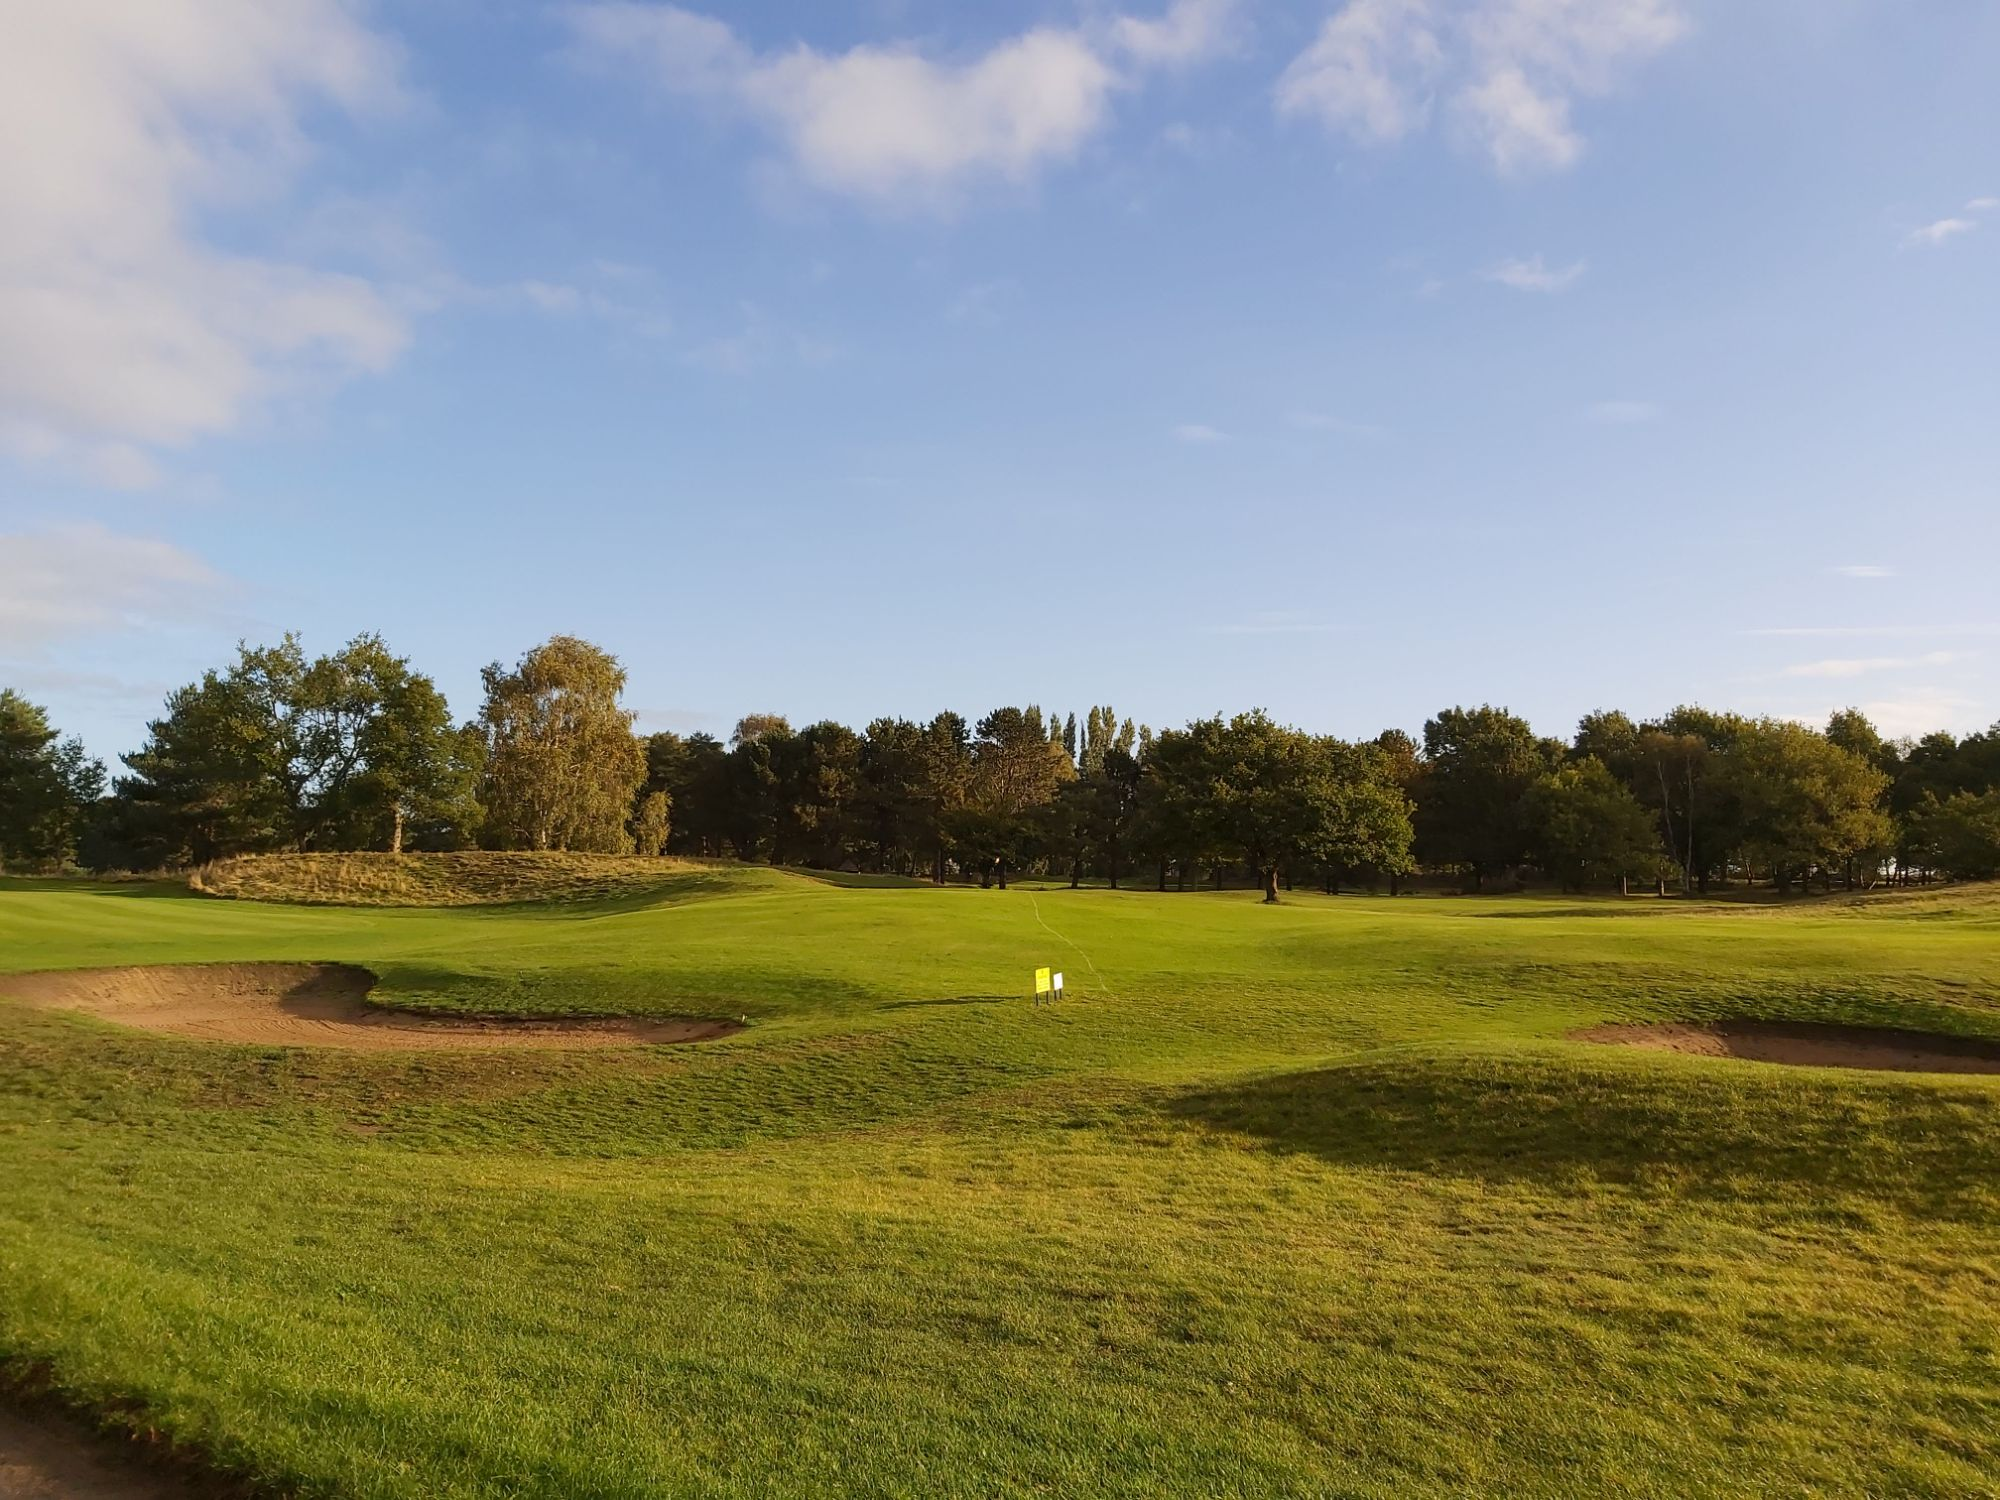 New Golf Pro Studio at Lincoln Golf Club. Planning Consultants: Fytche-Taylor Planning Ltd, Lincoln